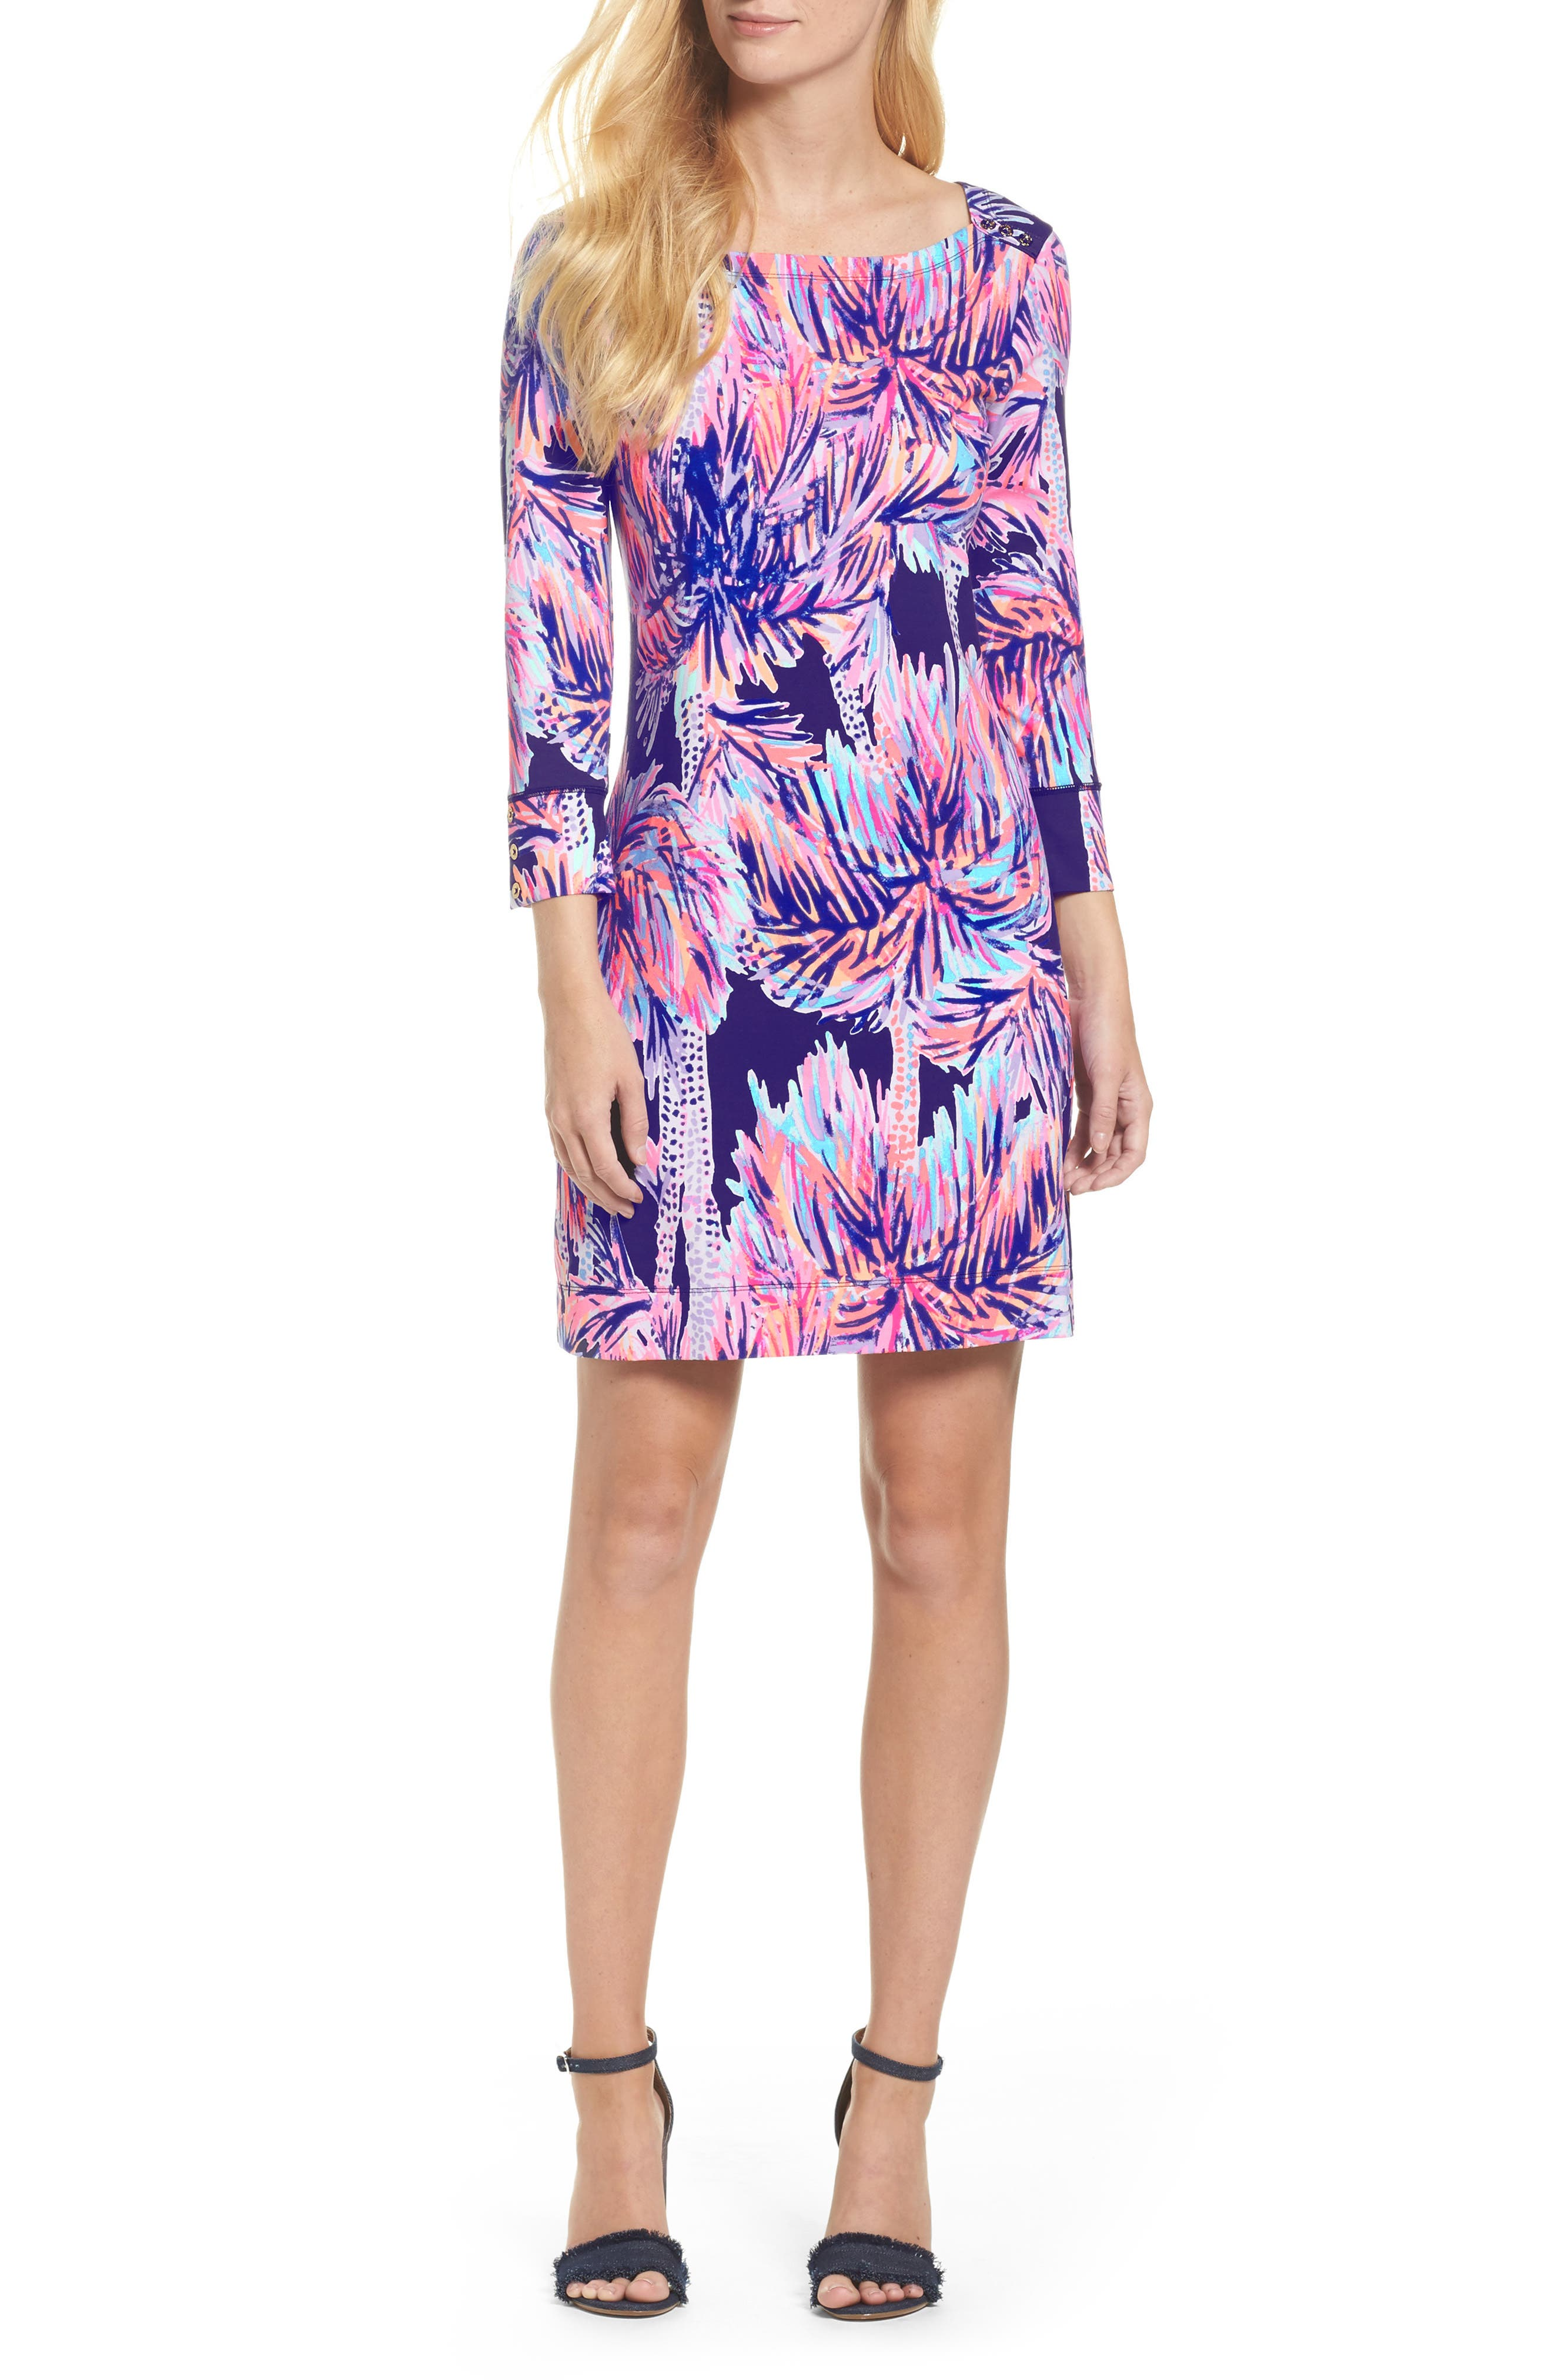 Sophie UPF 50+ Dress,                         Main,                         color, Bright Navy Palms Up